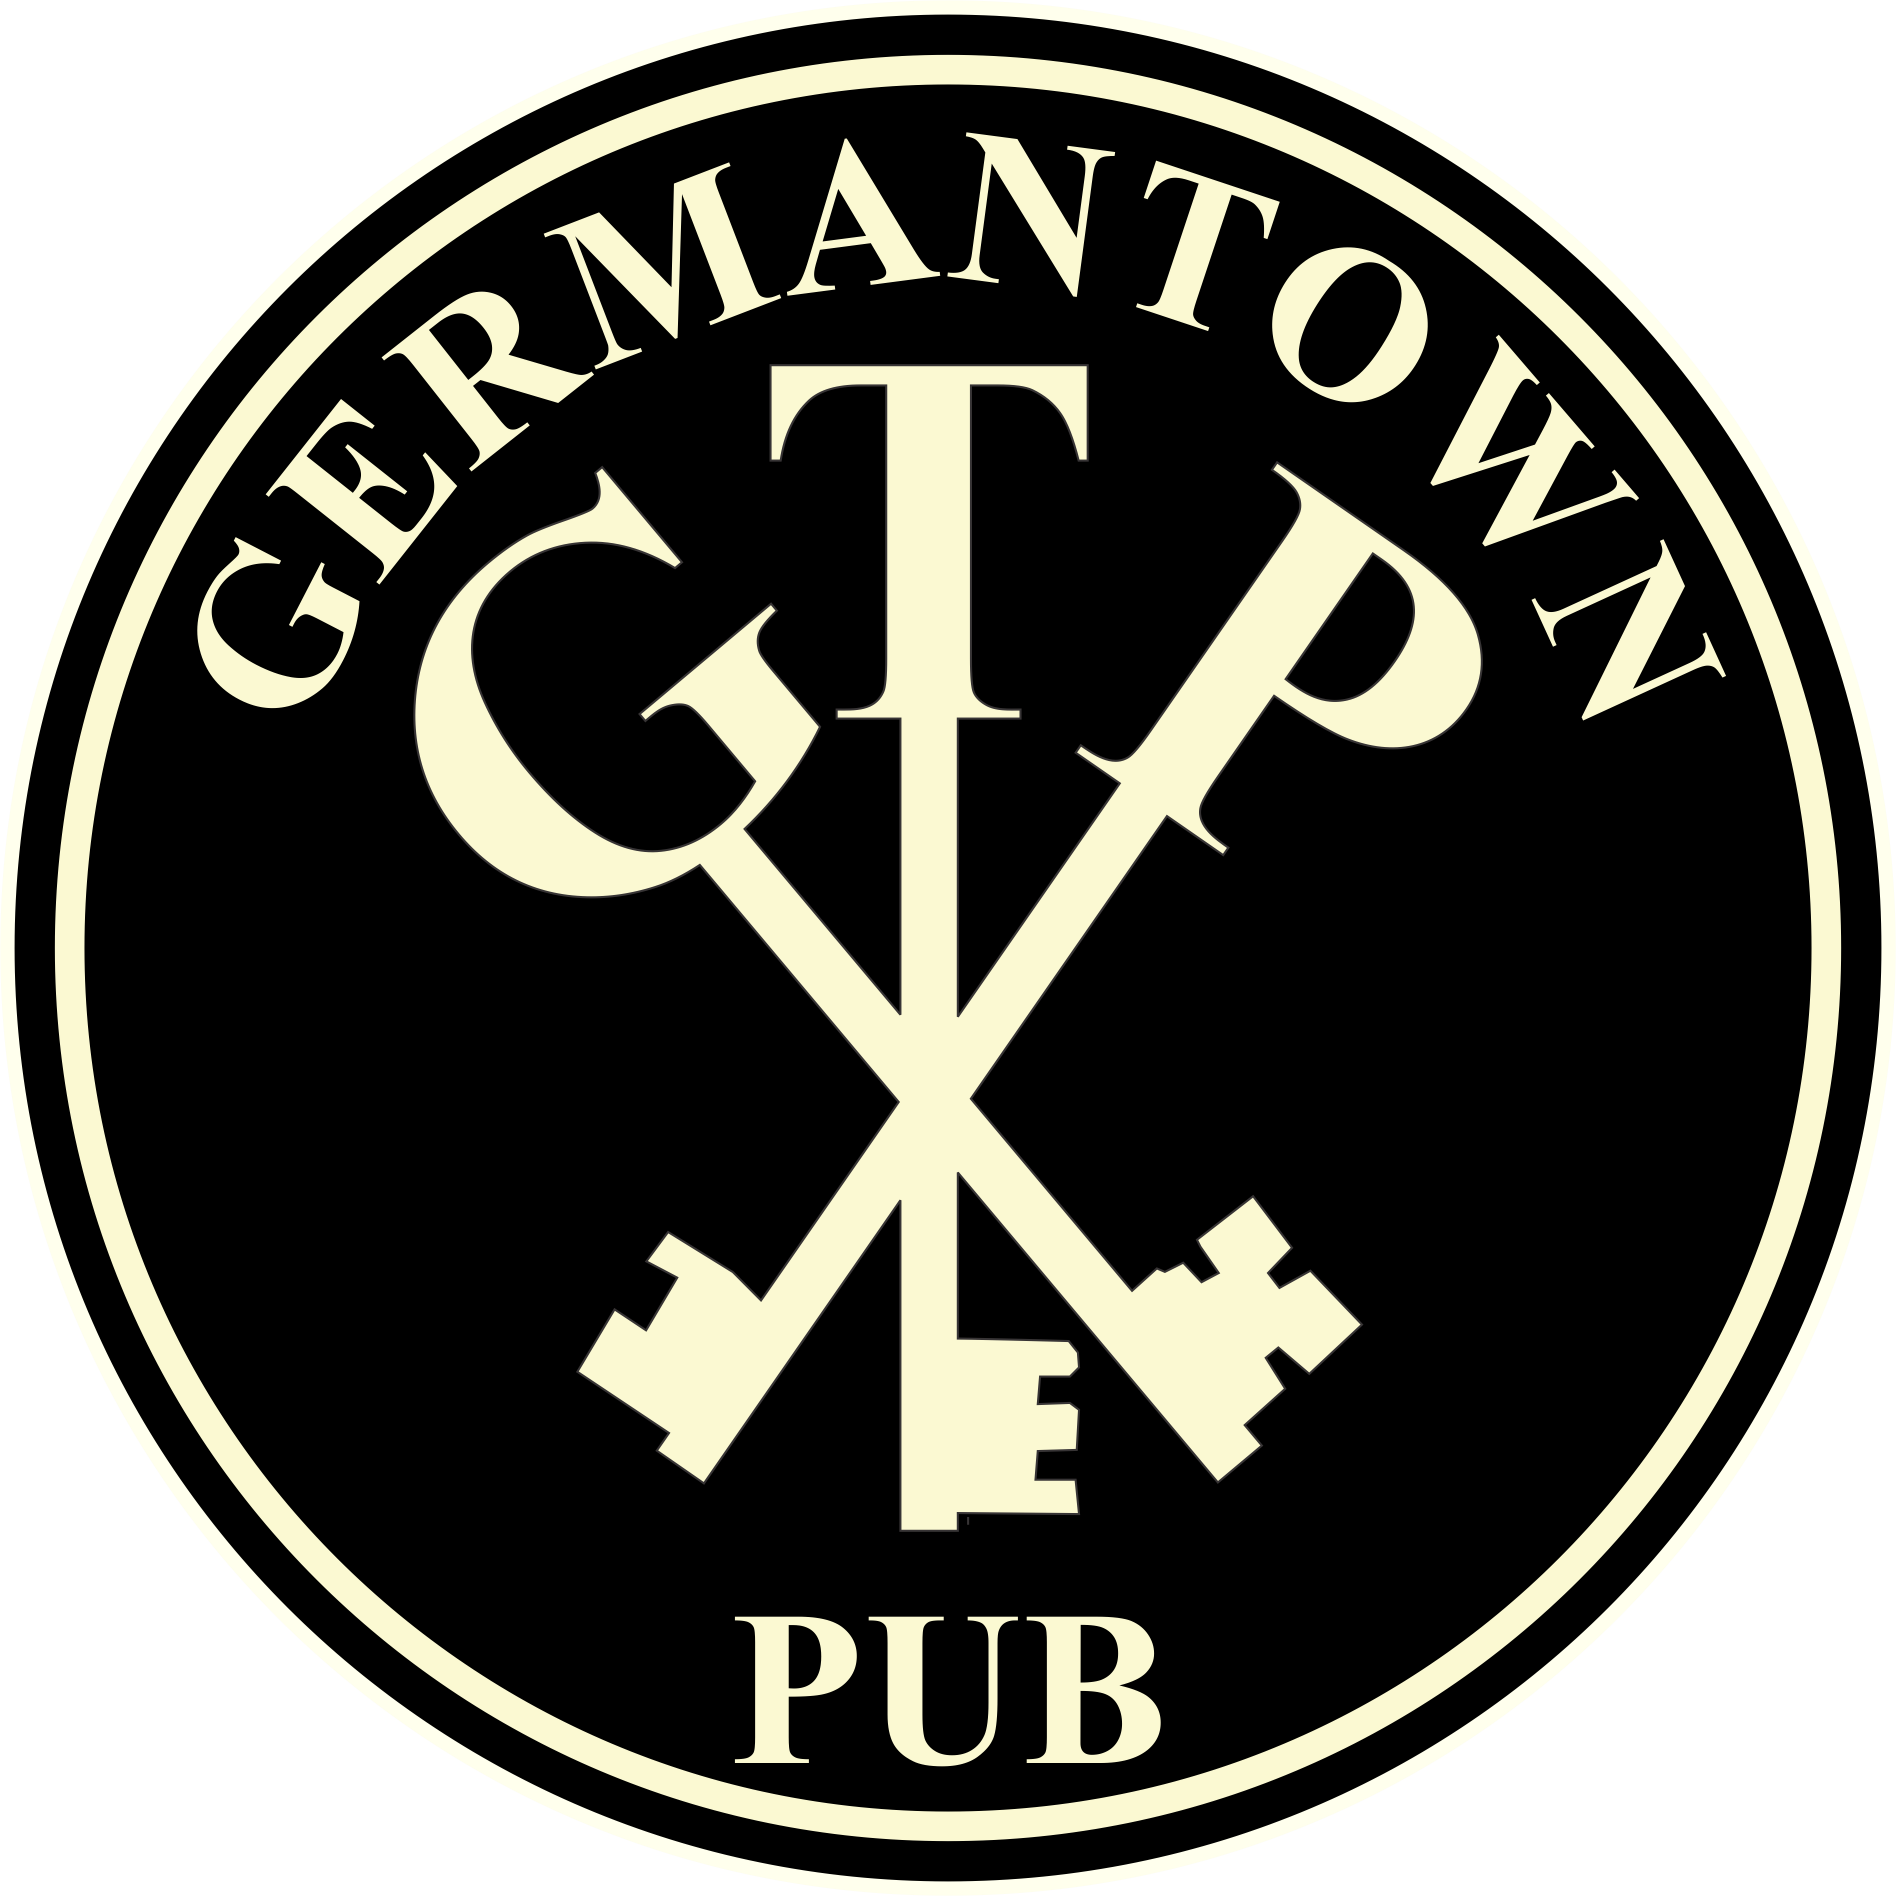 Germantown Pub